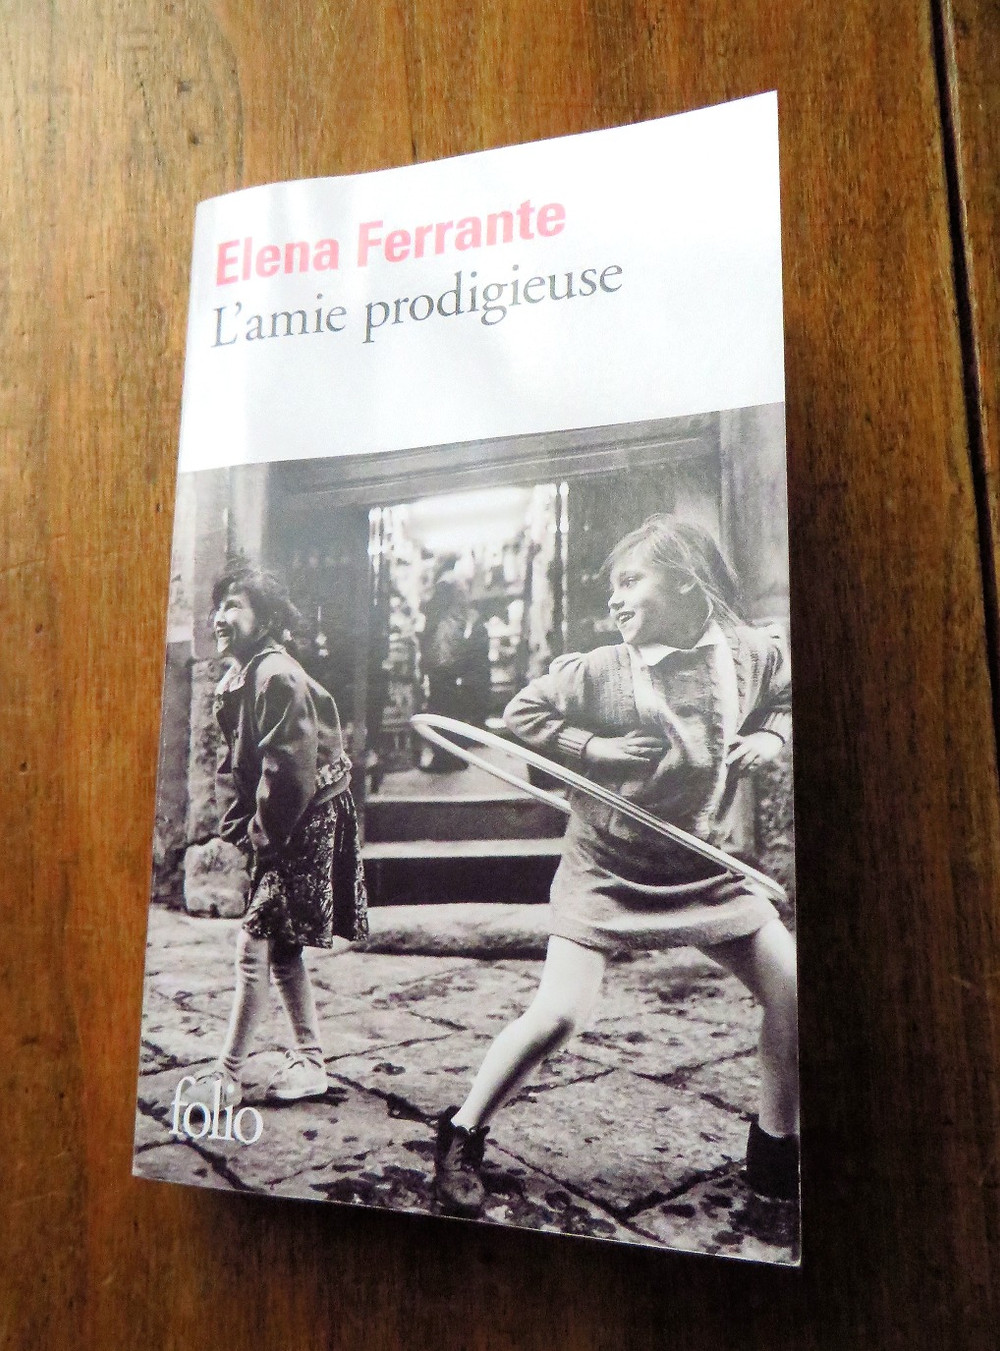 Photo : L'amie prodigieuse, Elena Ferrante